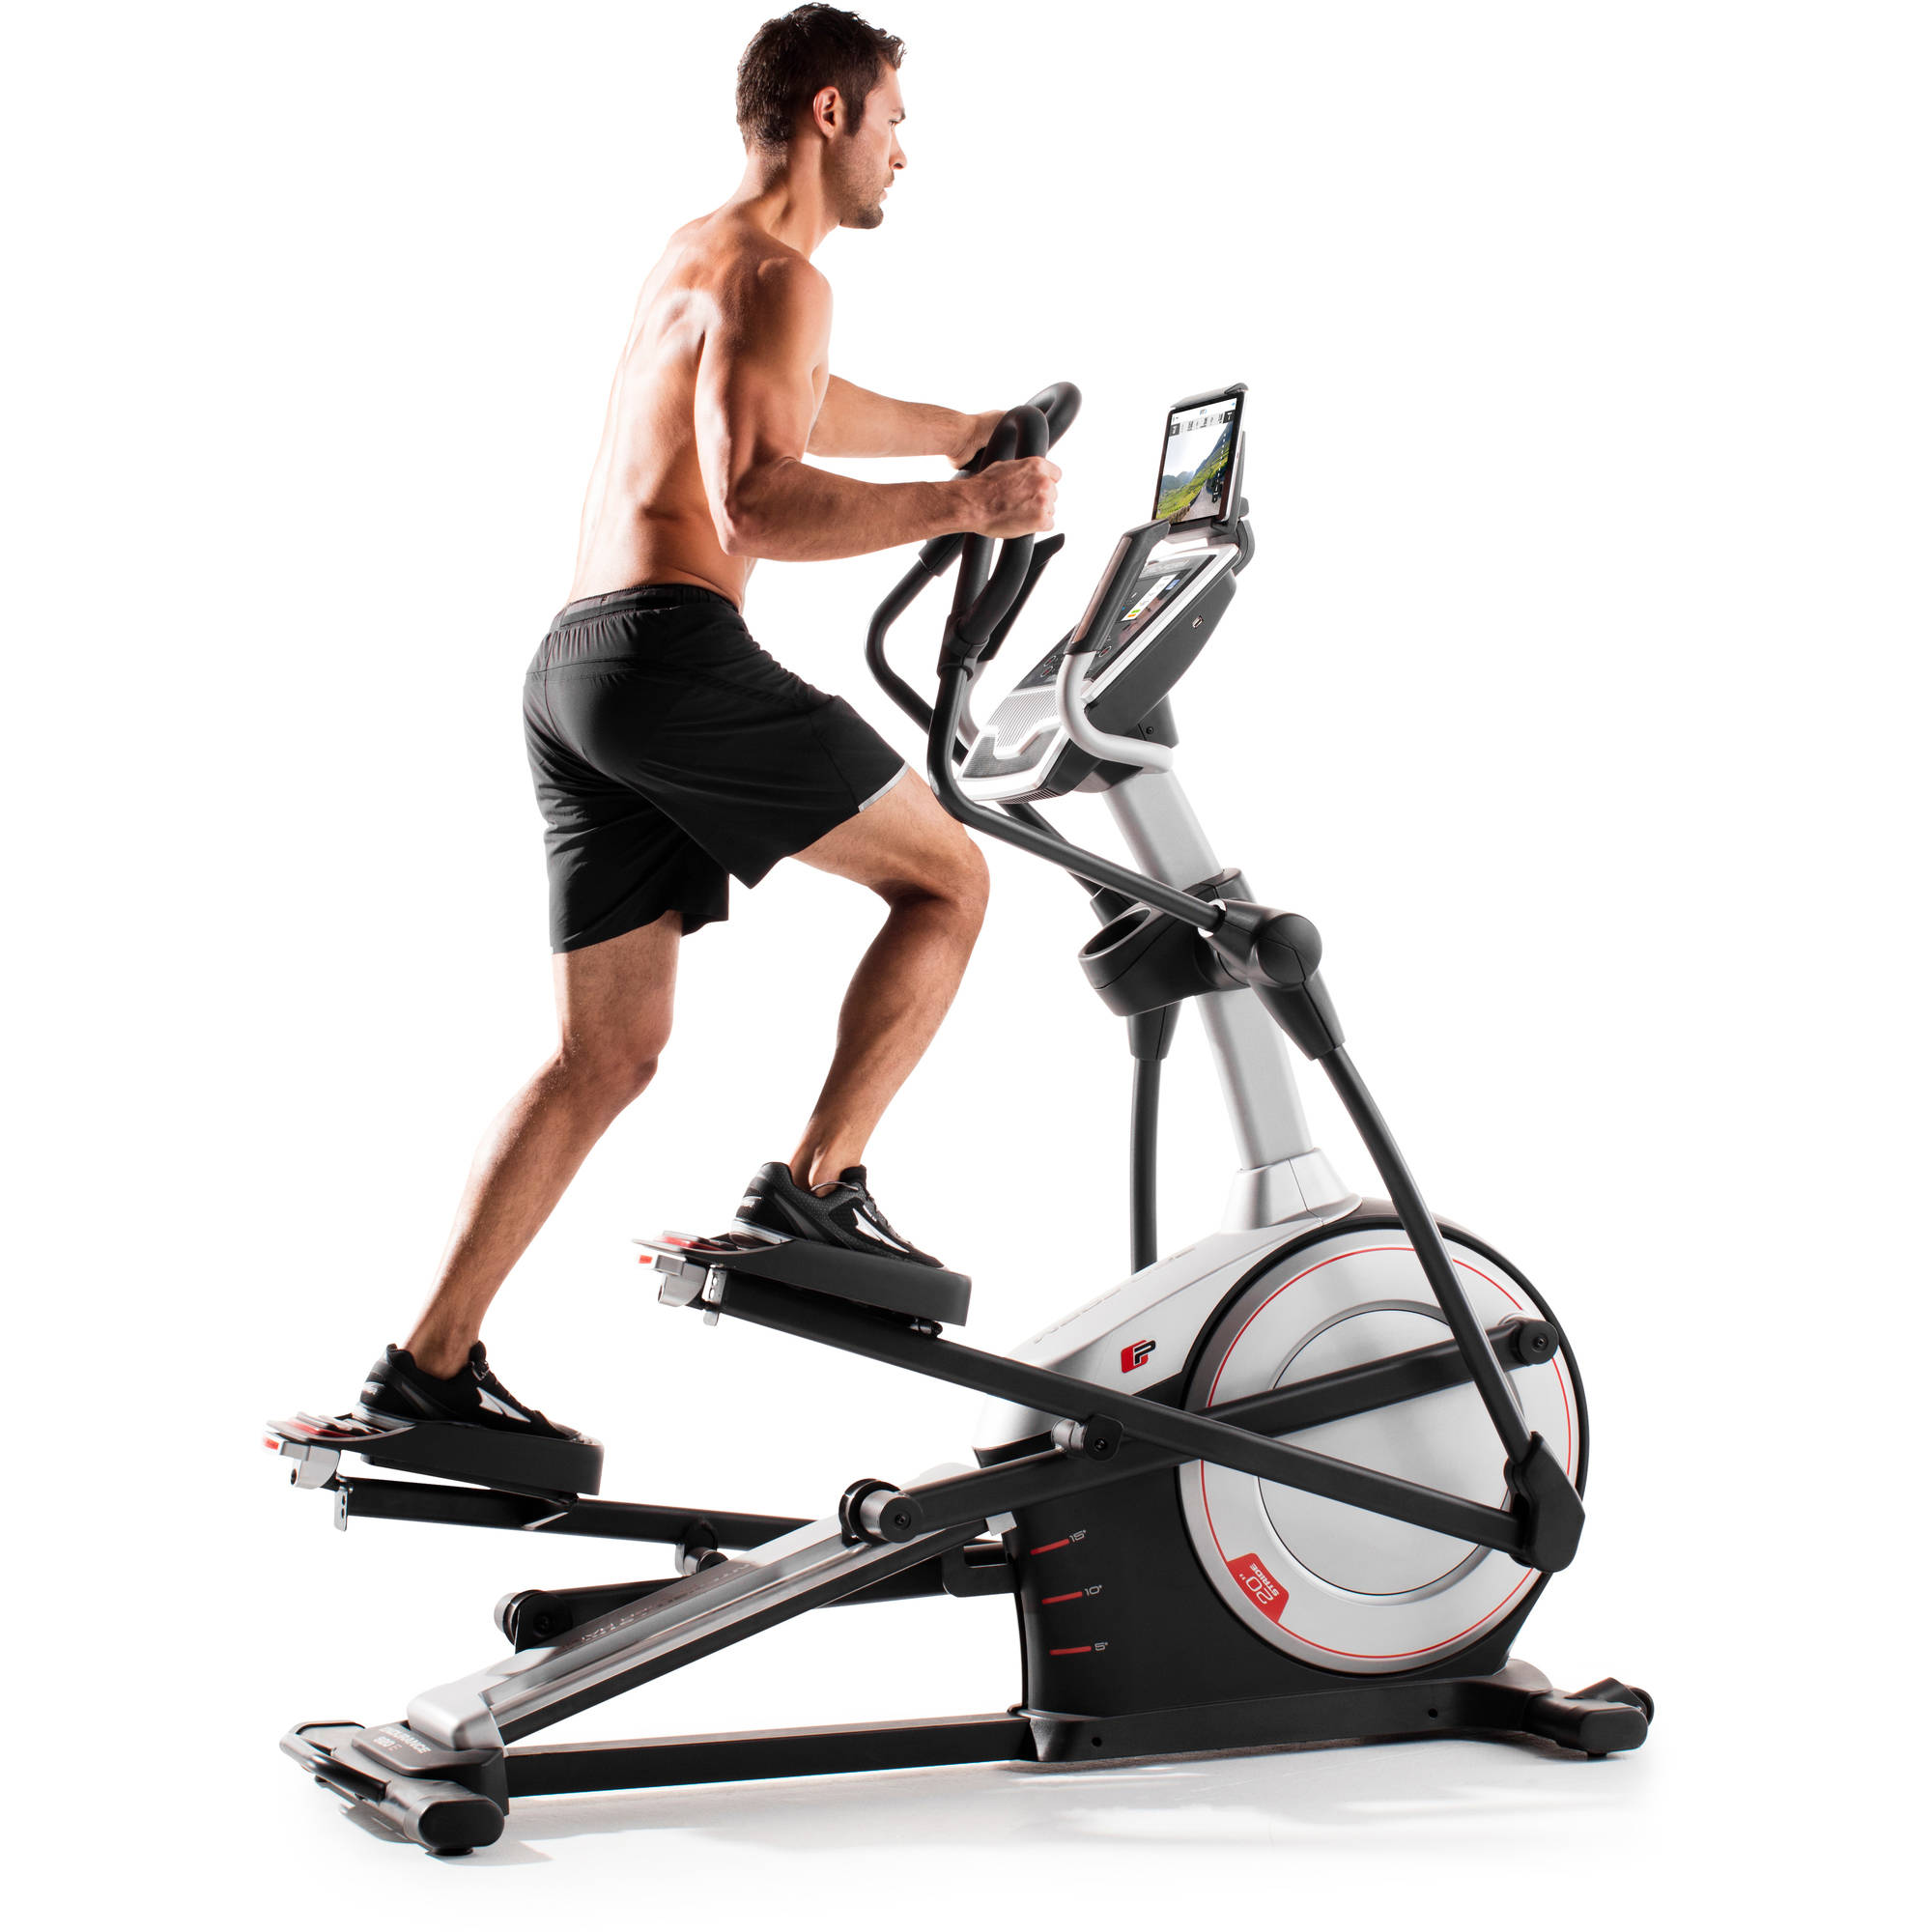 ProForm Endurance 920 Elliptical